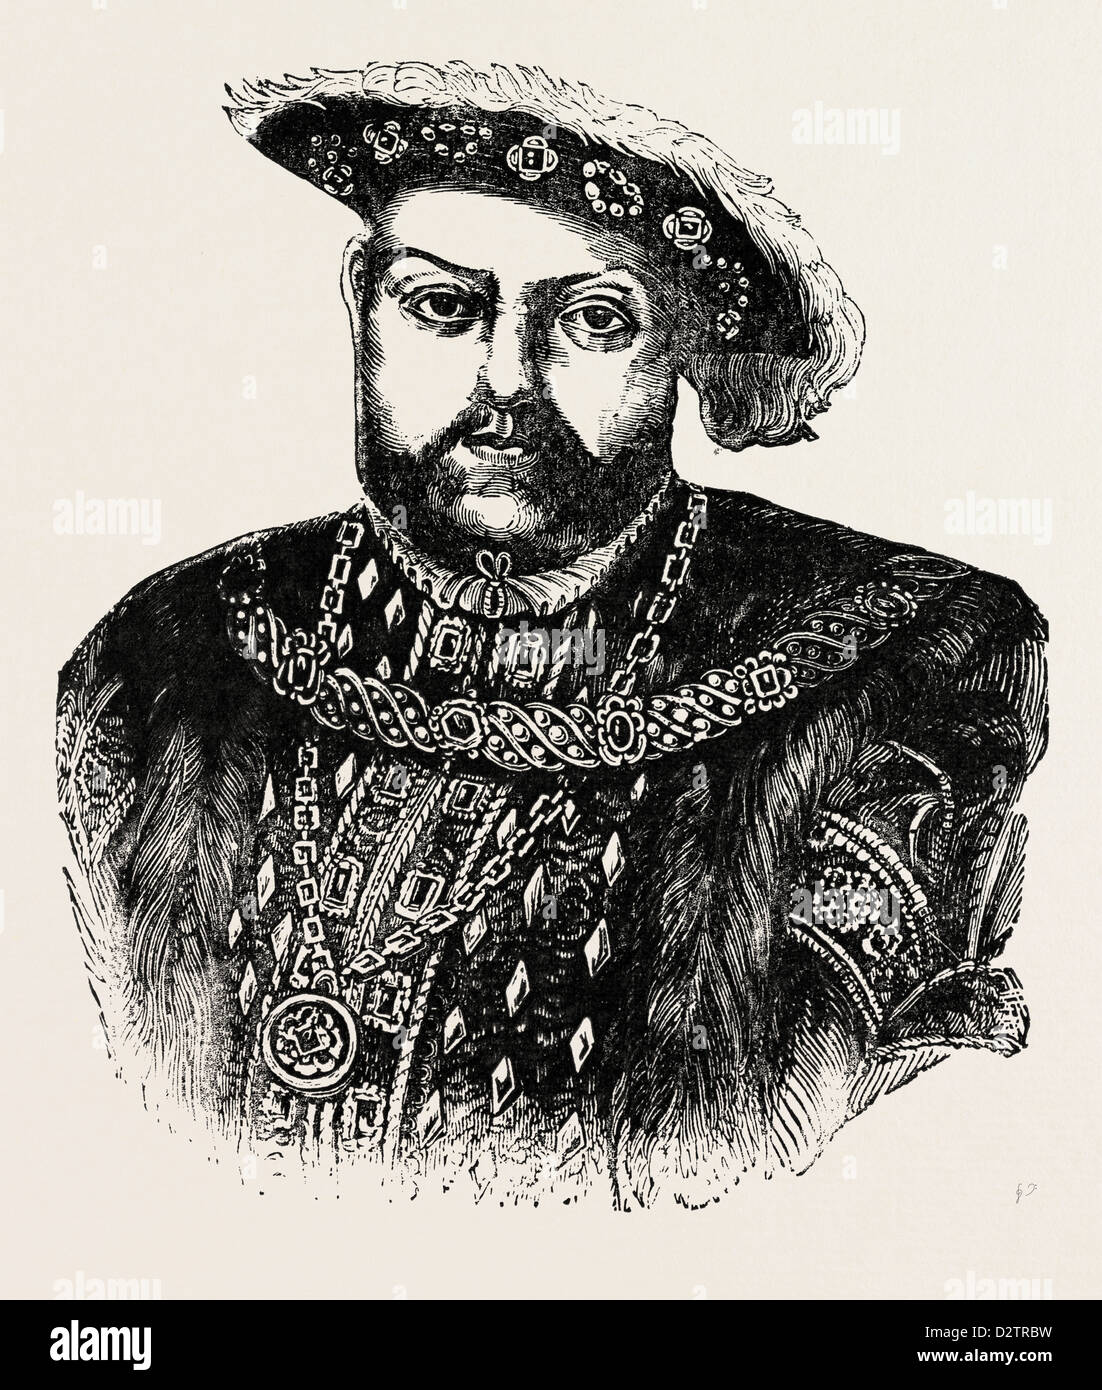 PORTRAIT OF HENRY VIII. BY HOLBEIN. - Stock Image